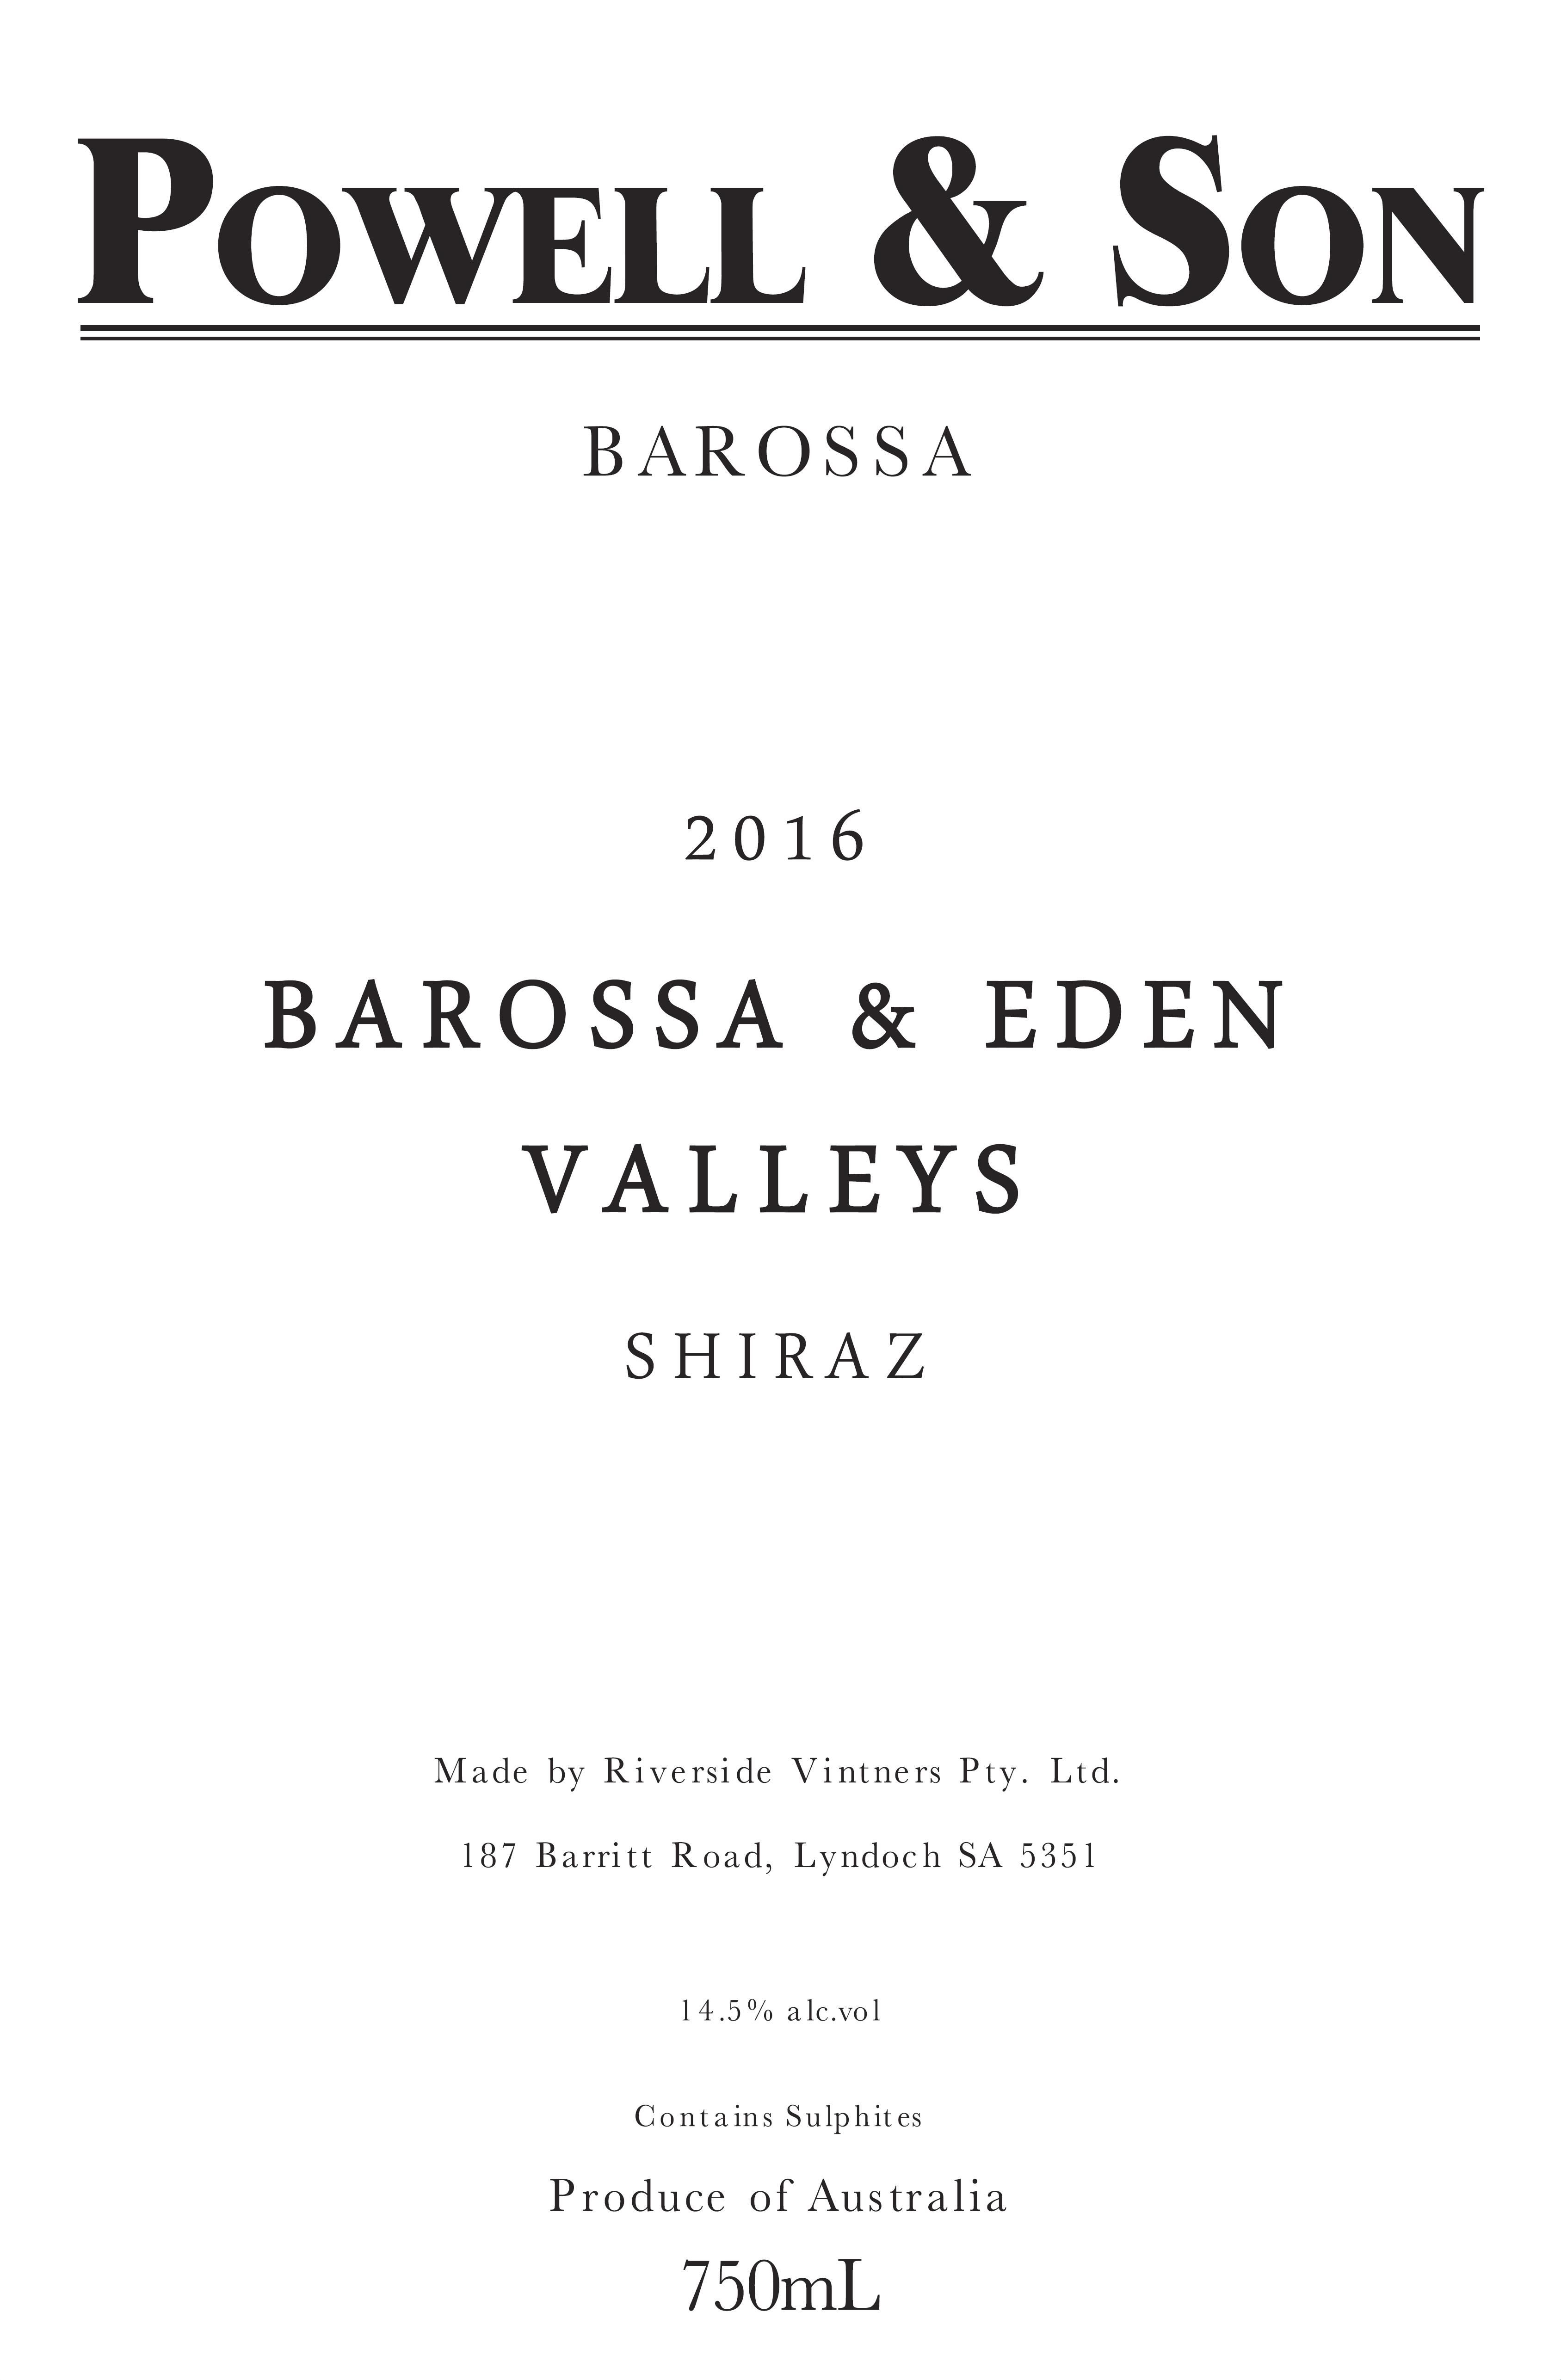 Powell & Son Barossa and Eden Valley Shiraz 2016 Front Label